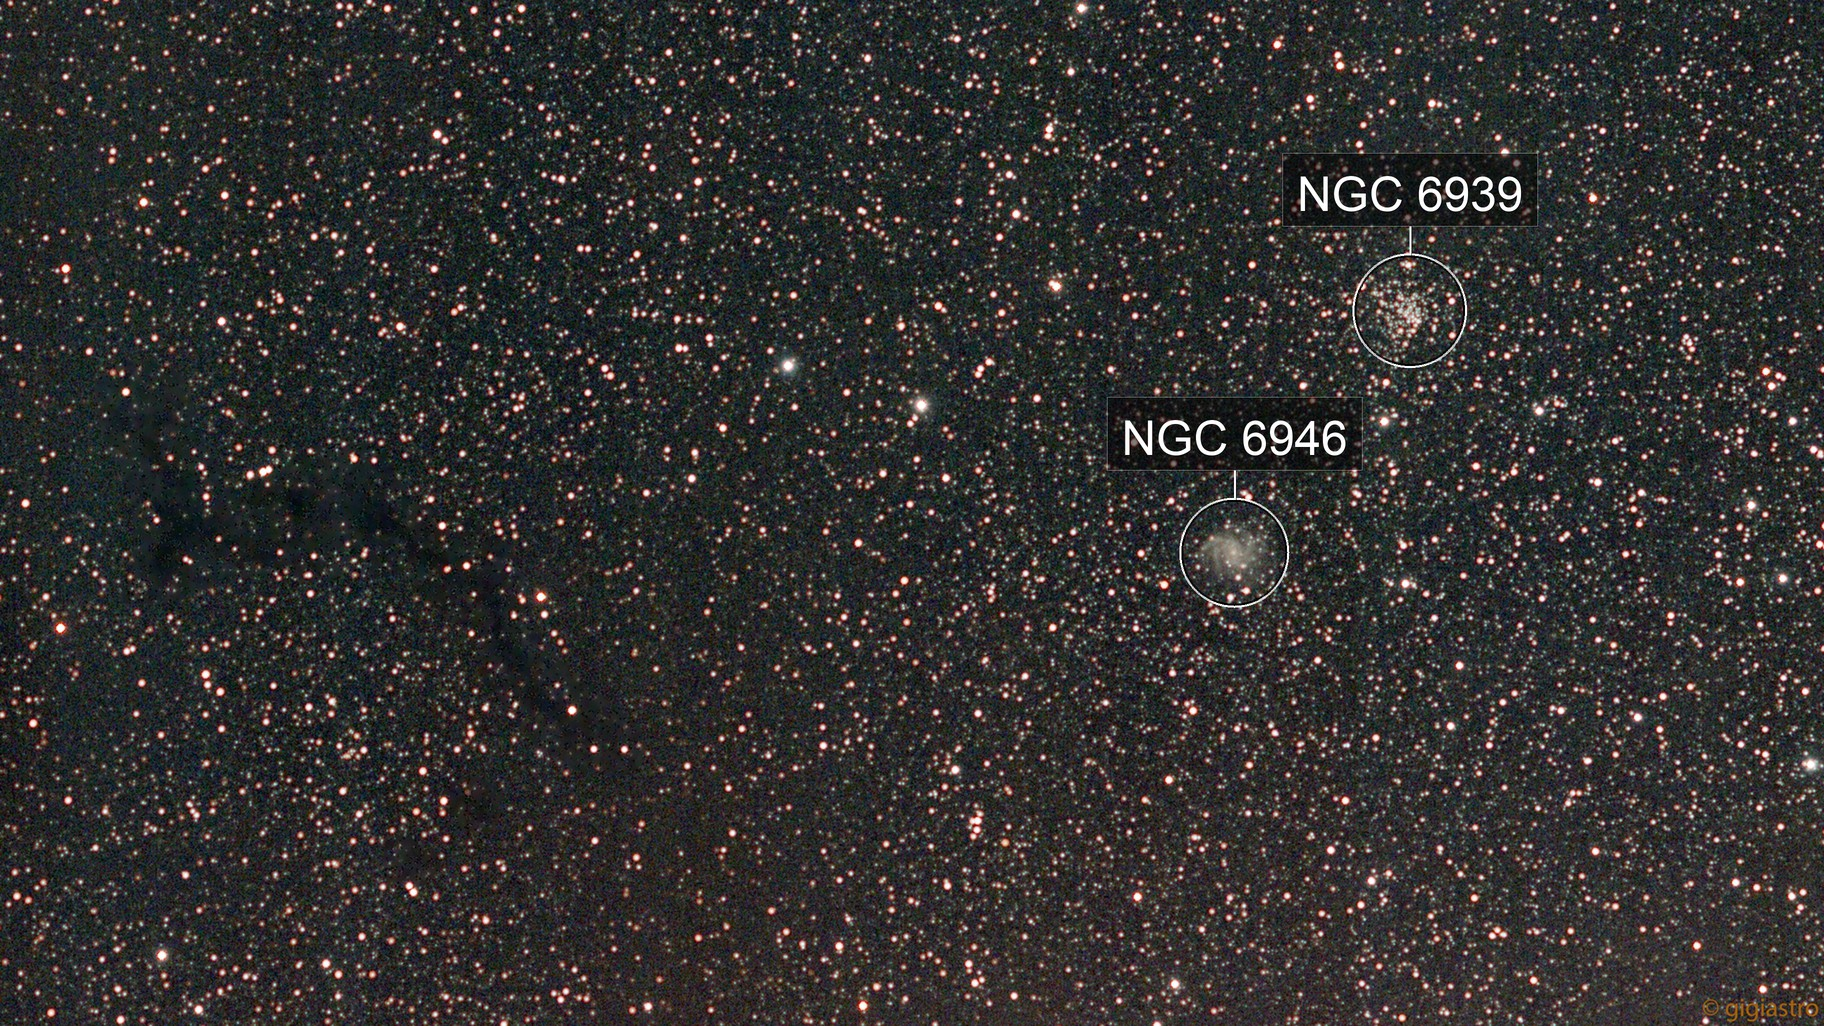 A Seahorse and a Brittle star (Dark nebula B 150 and galaxy NGC 6946)